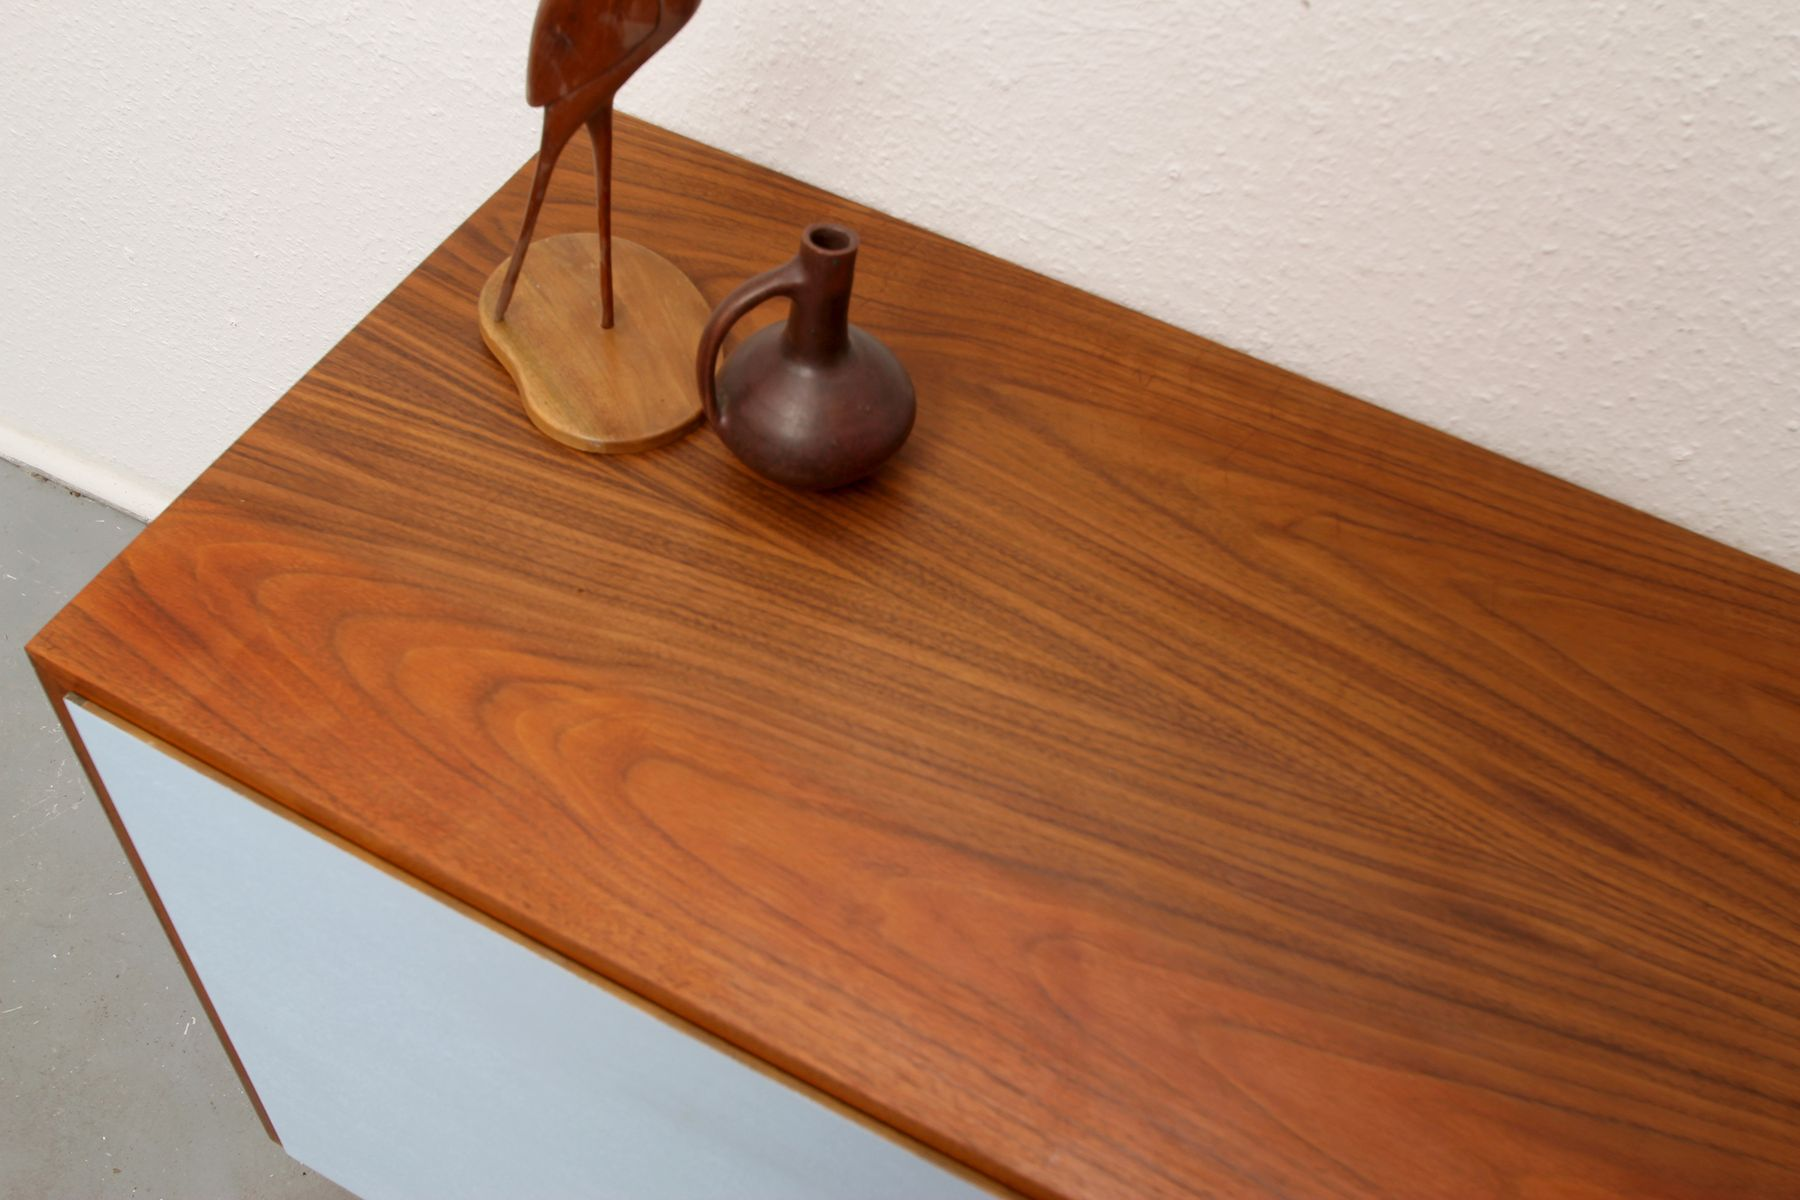 German Blue and White Teak Lowboard, 1960s for sale at Pamono